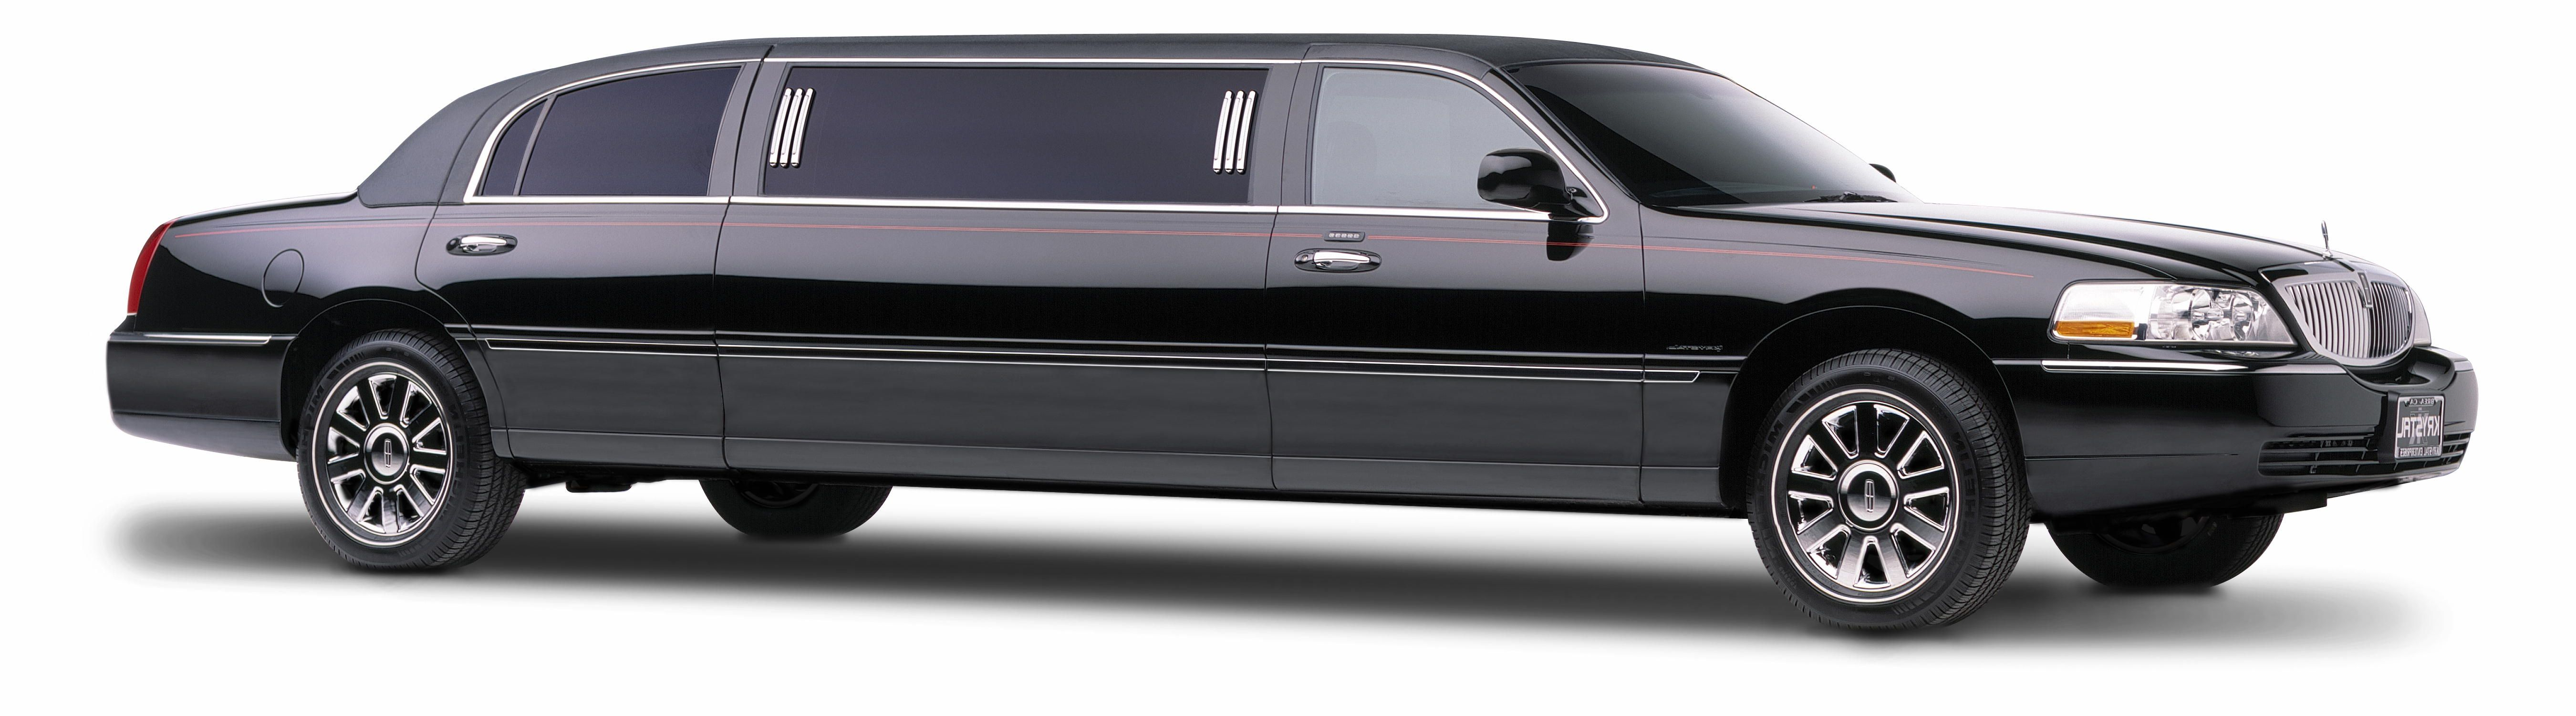 6 Passenger Vehicles >> 6 Passenger Limousine Love This One How About You View